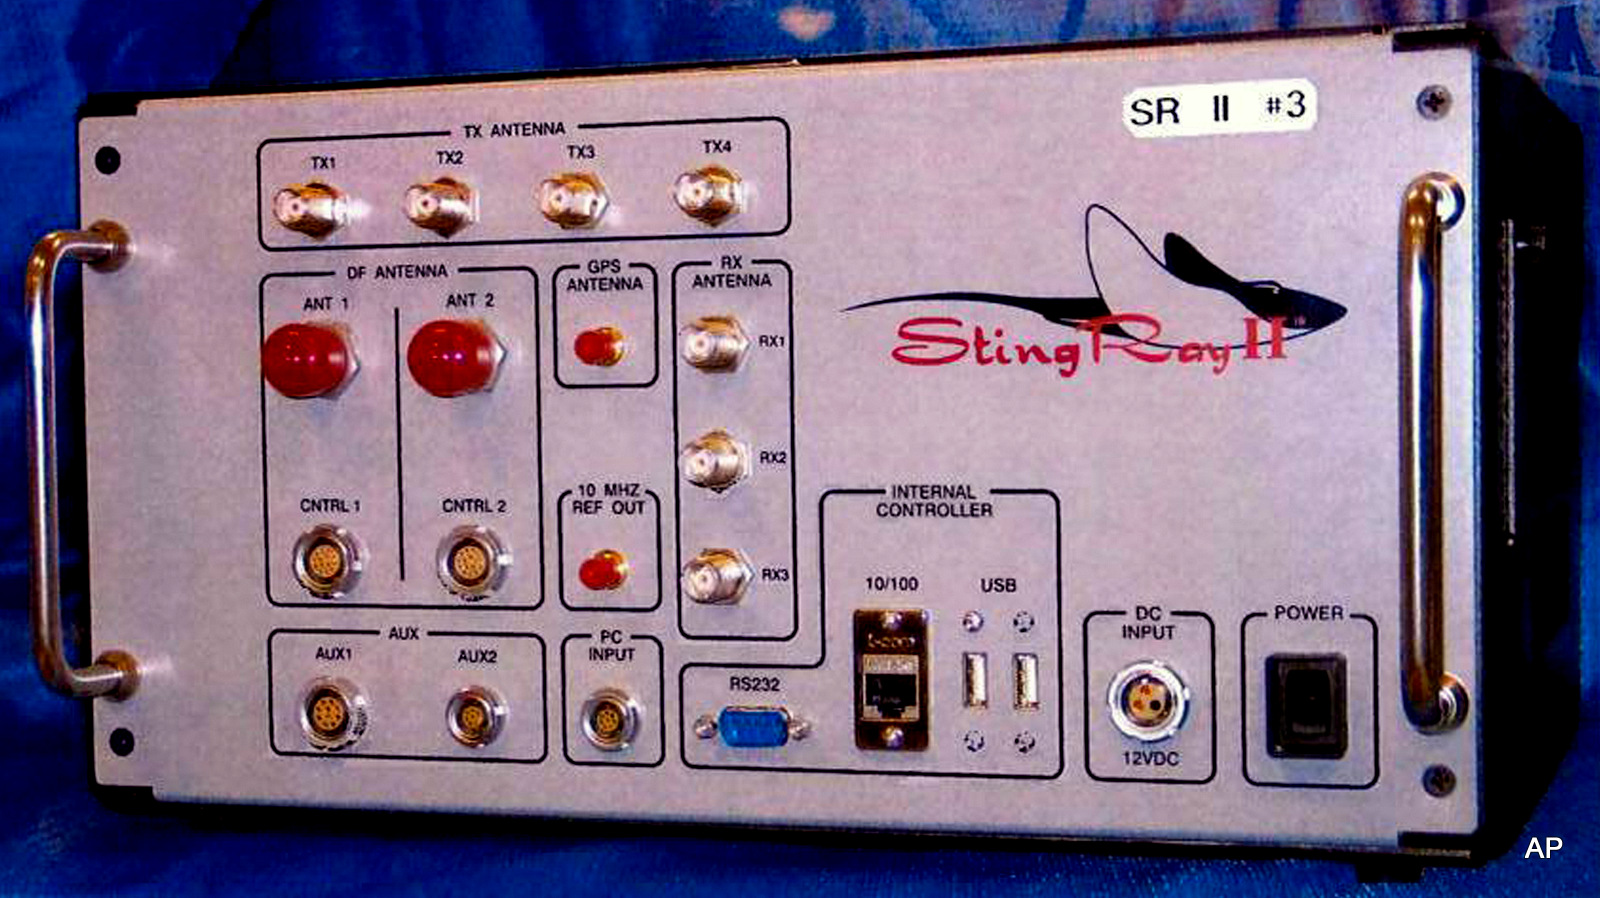 This undated handout photo provided by the U.S. Patent and Trademark Office shows the StingRay II, manufactured by Harris Corporation, of Melbourne, Fla., a cellular site simulator used for surveillance purposes. A police officer testified Wednesday, April 8, 2015, that the Baltimore Police Department has used Hailstorm, a upgraded version of the StringRay surveillance device, 4,300 times and believes it is under orders by the U.S. government to withhold evidence from criminal trials and ignore subpoenas in cases where the device is used.